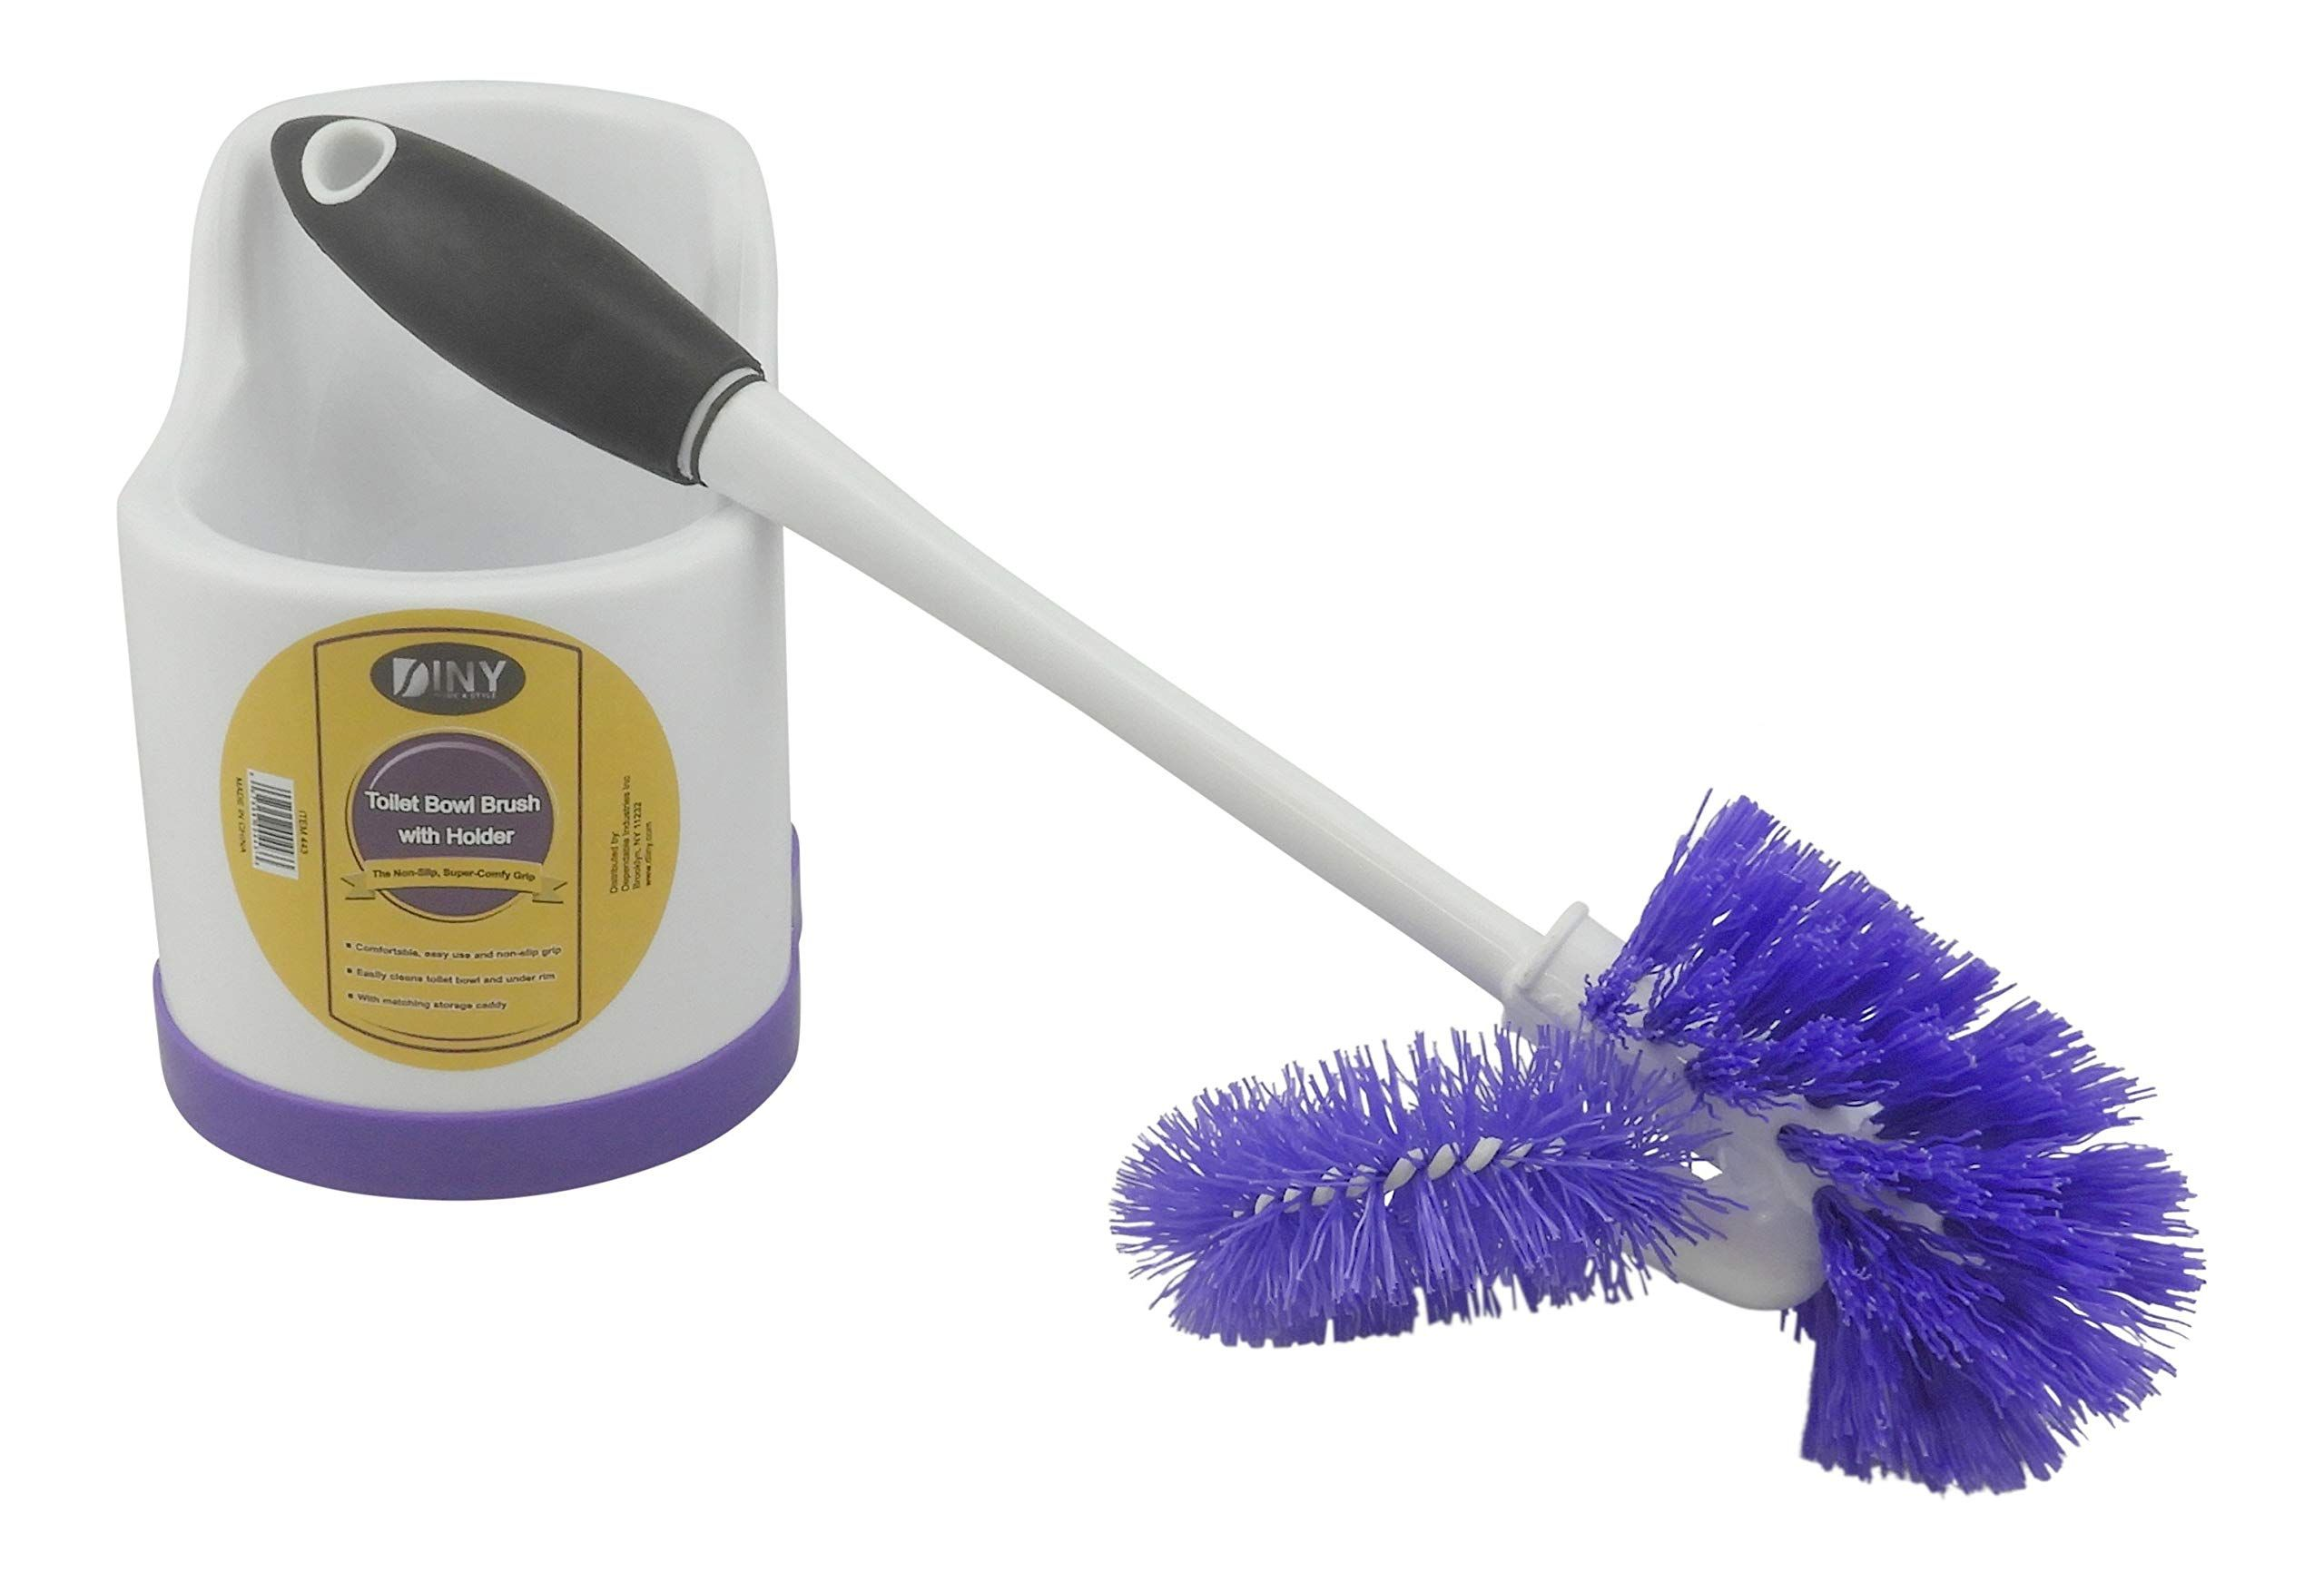 Diny Home Products Toilet Bowl Brush With Rim Cleaner And Holder Set Toilet Bowl Cleaning System With Scrubbin In 2020 Toilet Bowl Brush Toilet Bowl Clean Toilet Bowl